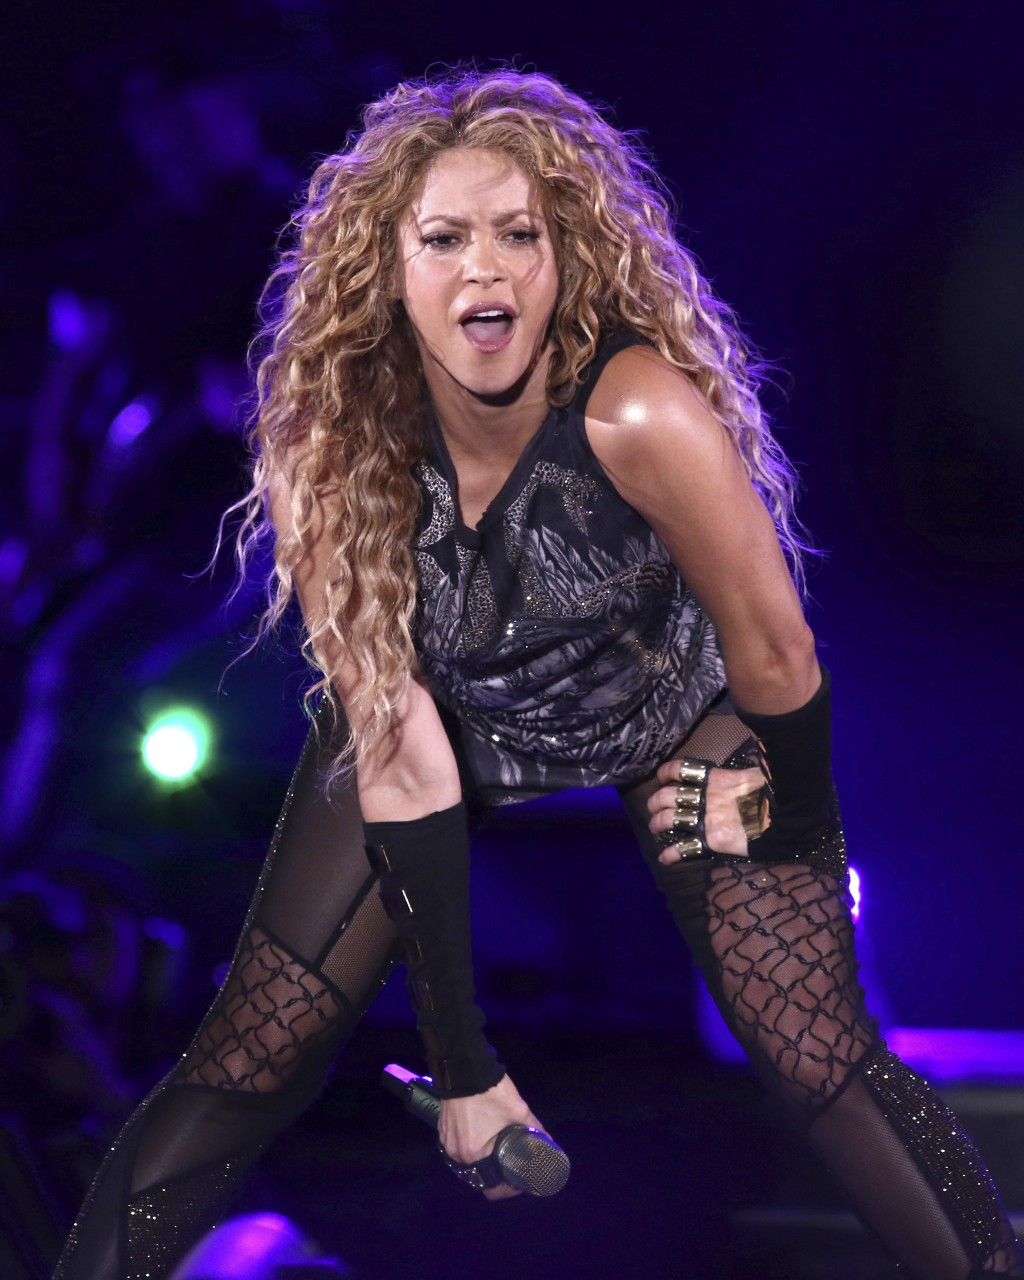 FILE - This Aug. 10, 2018 file photo shows Shakira performing in concert at Madison Square Garden in New York. The Board of Hipgnosis Songs Fund Limit...